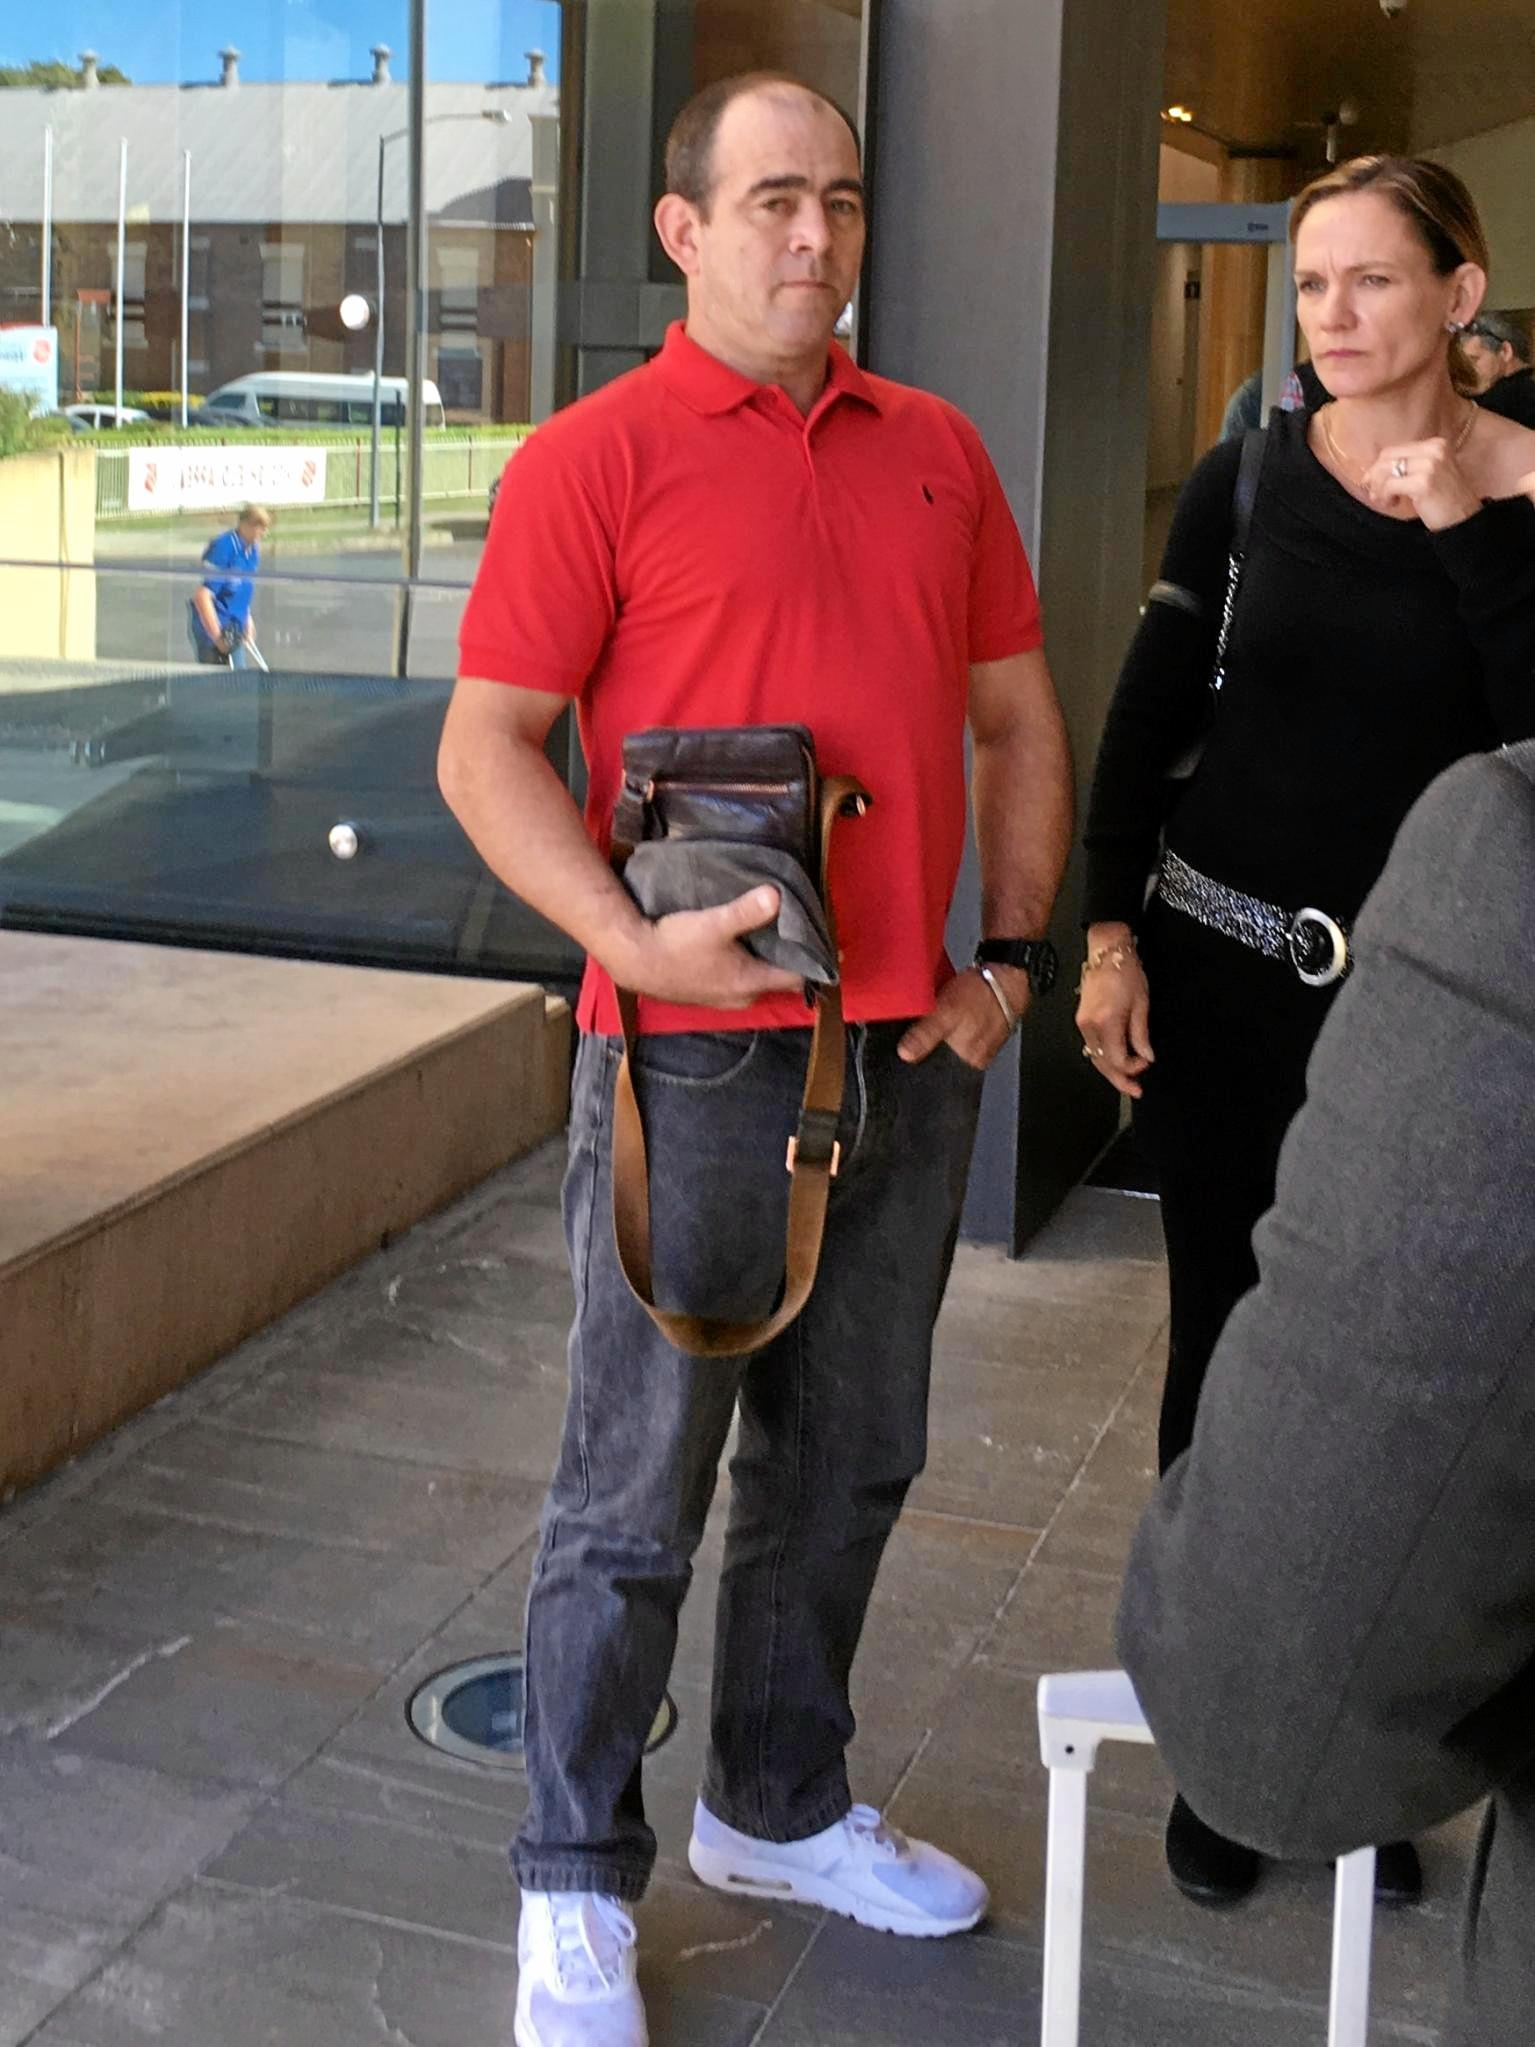 DRUG SUPPLY. Suspended greyhound trainer Anthony Hess leaves court after his conviction for drug offences.